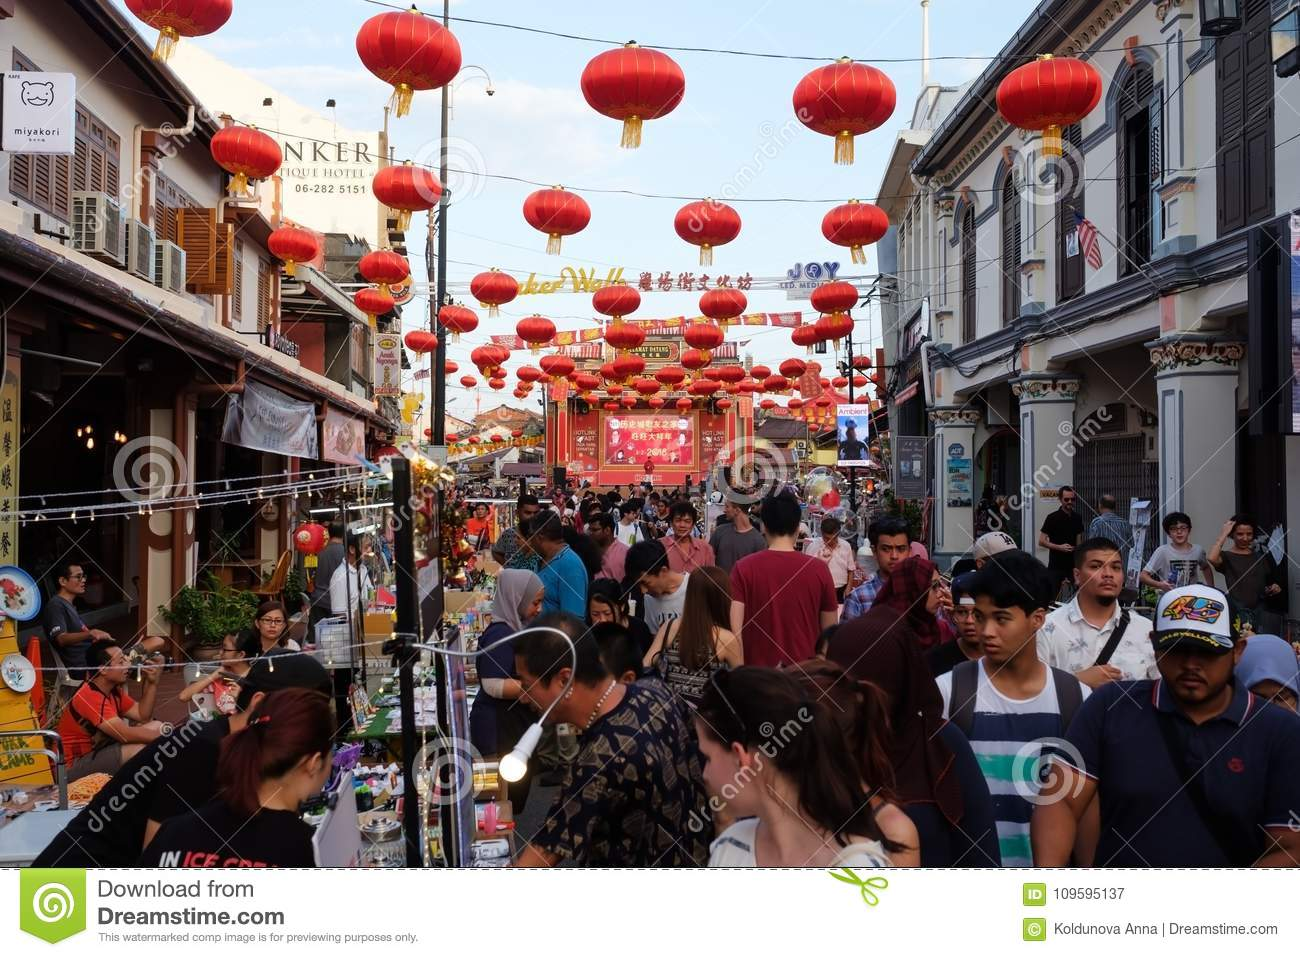 MALACCA, MALAYSIA - FEBRUARY 03, 2018 : The Jonker night market is opening. many street shops and crowd of people